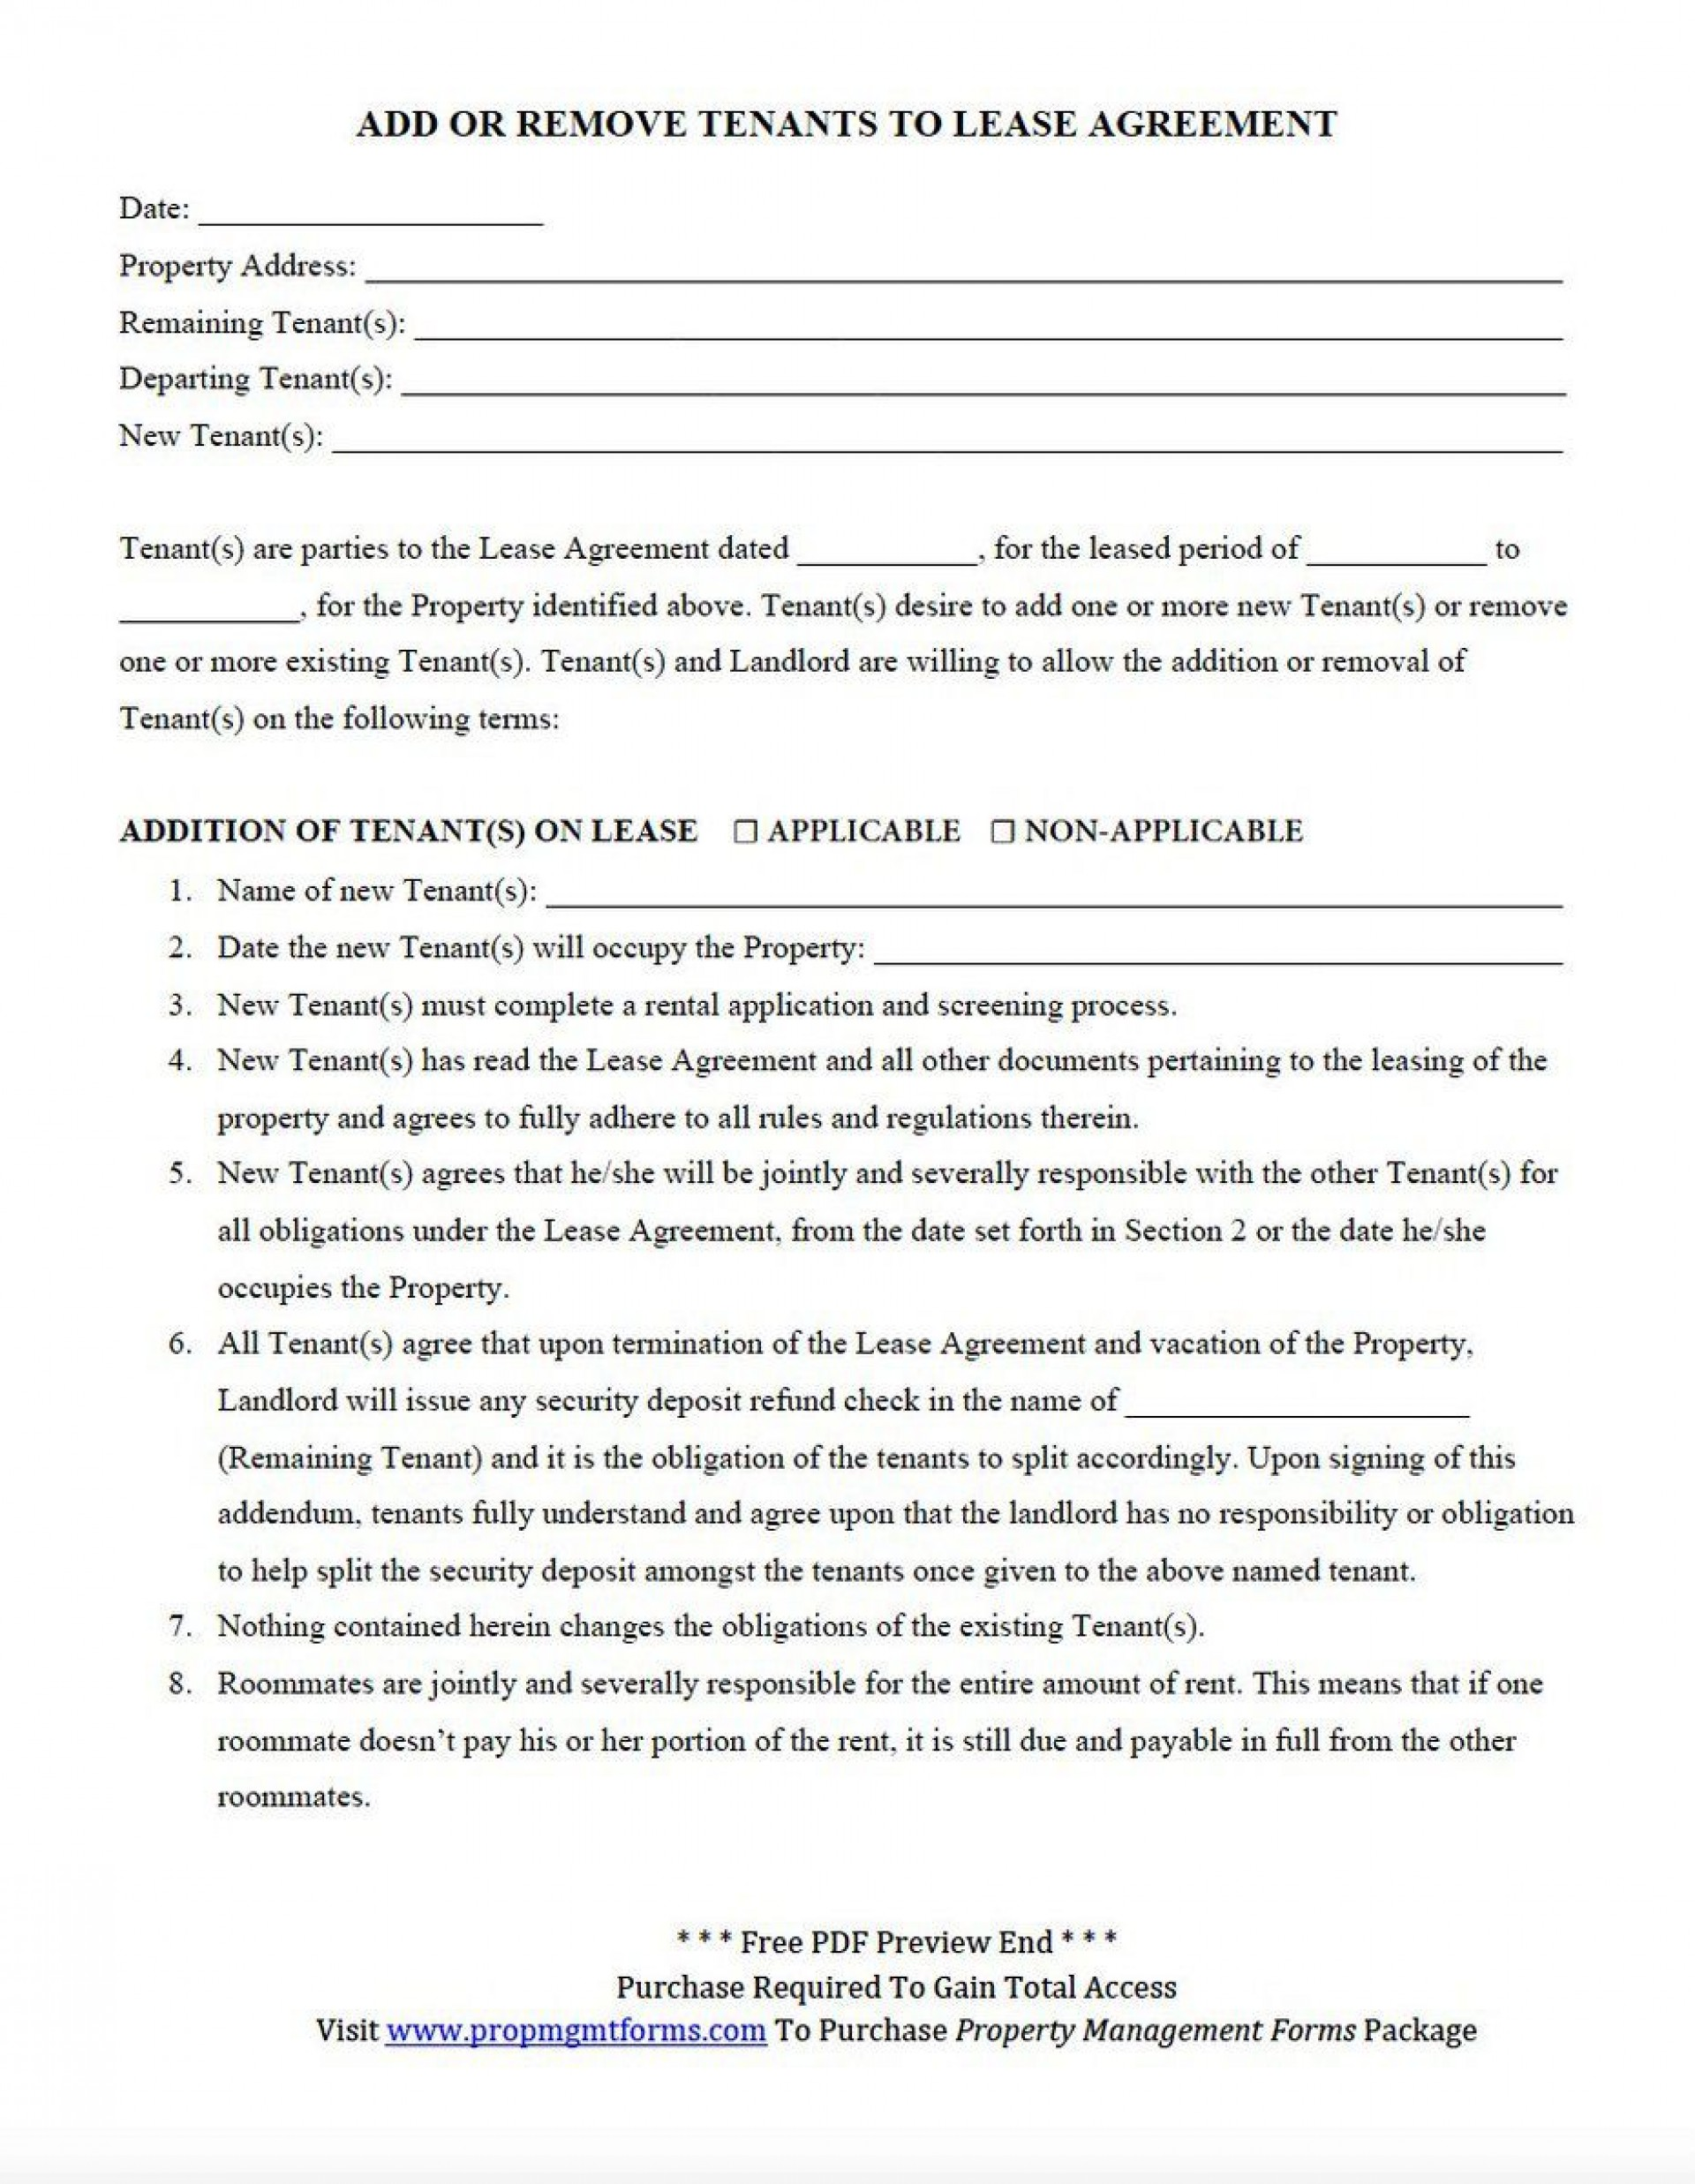 003 Striking Property Management Agreement Template Pdf High Resolution  Contract1920